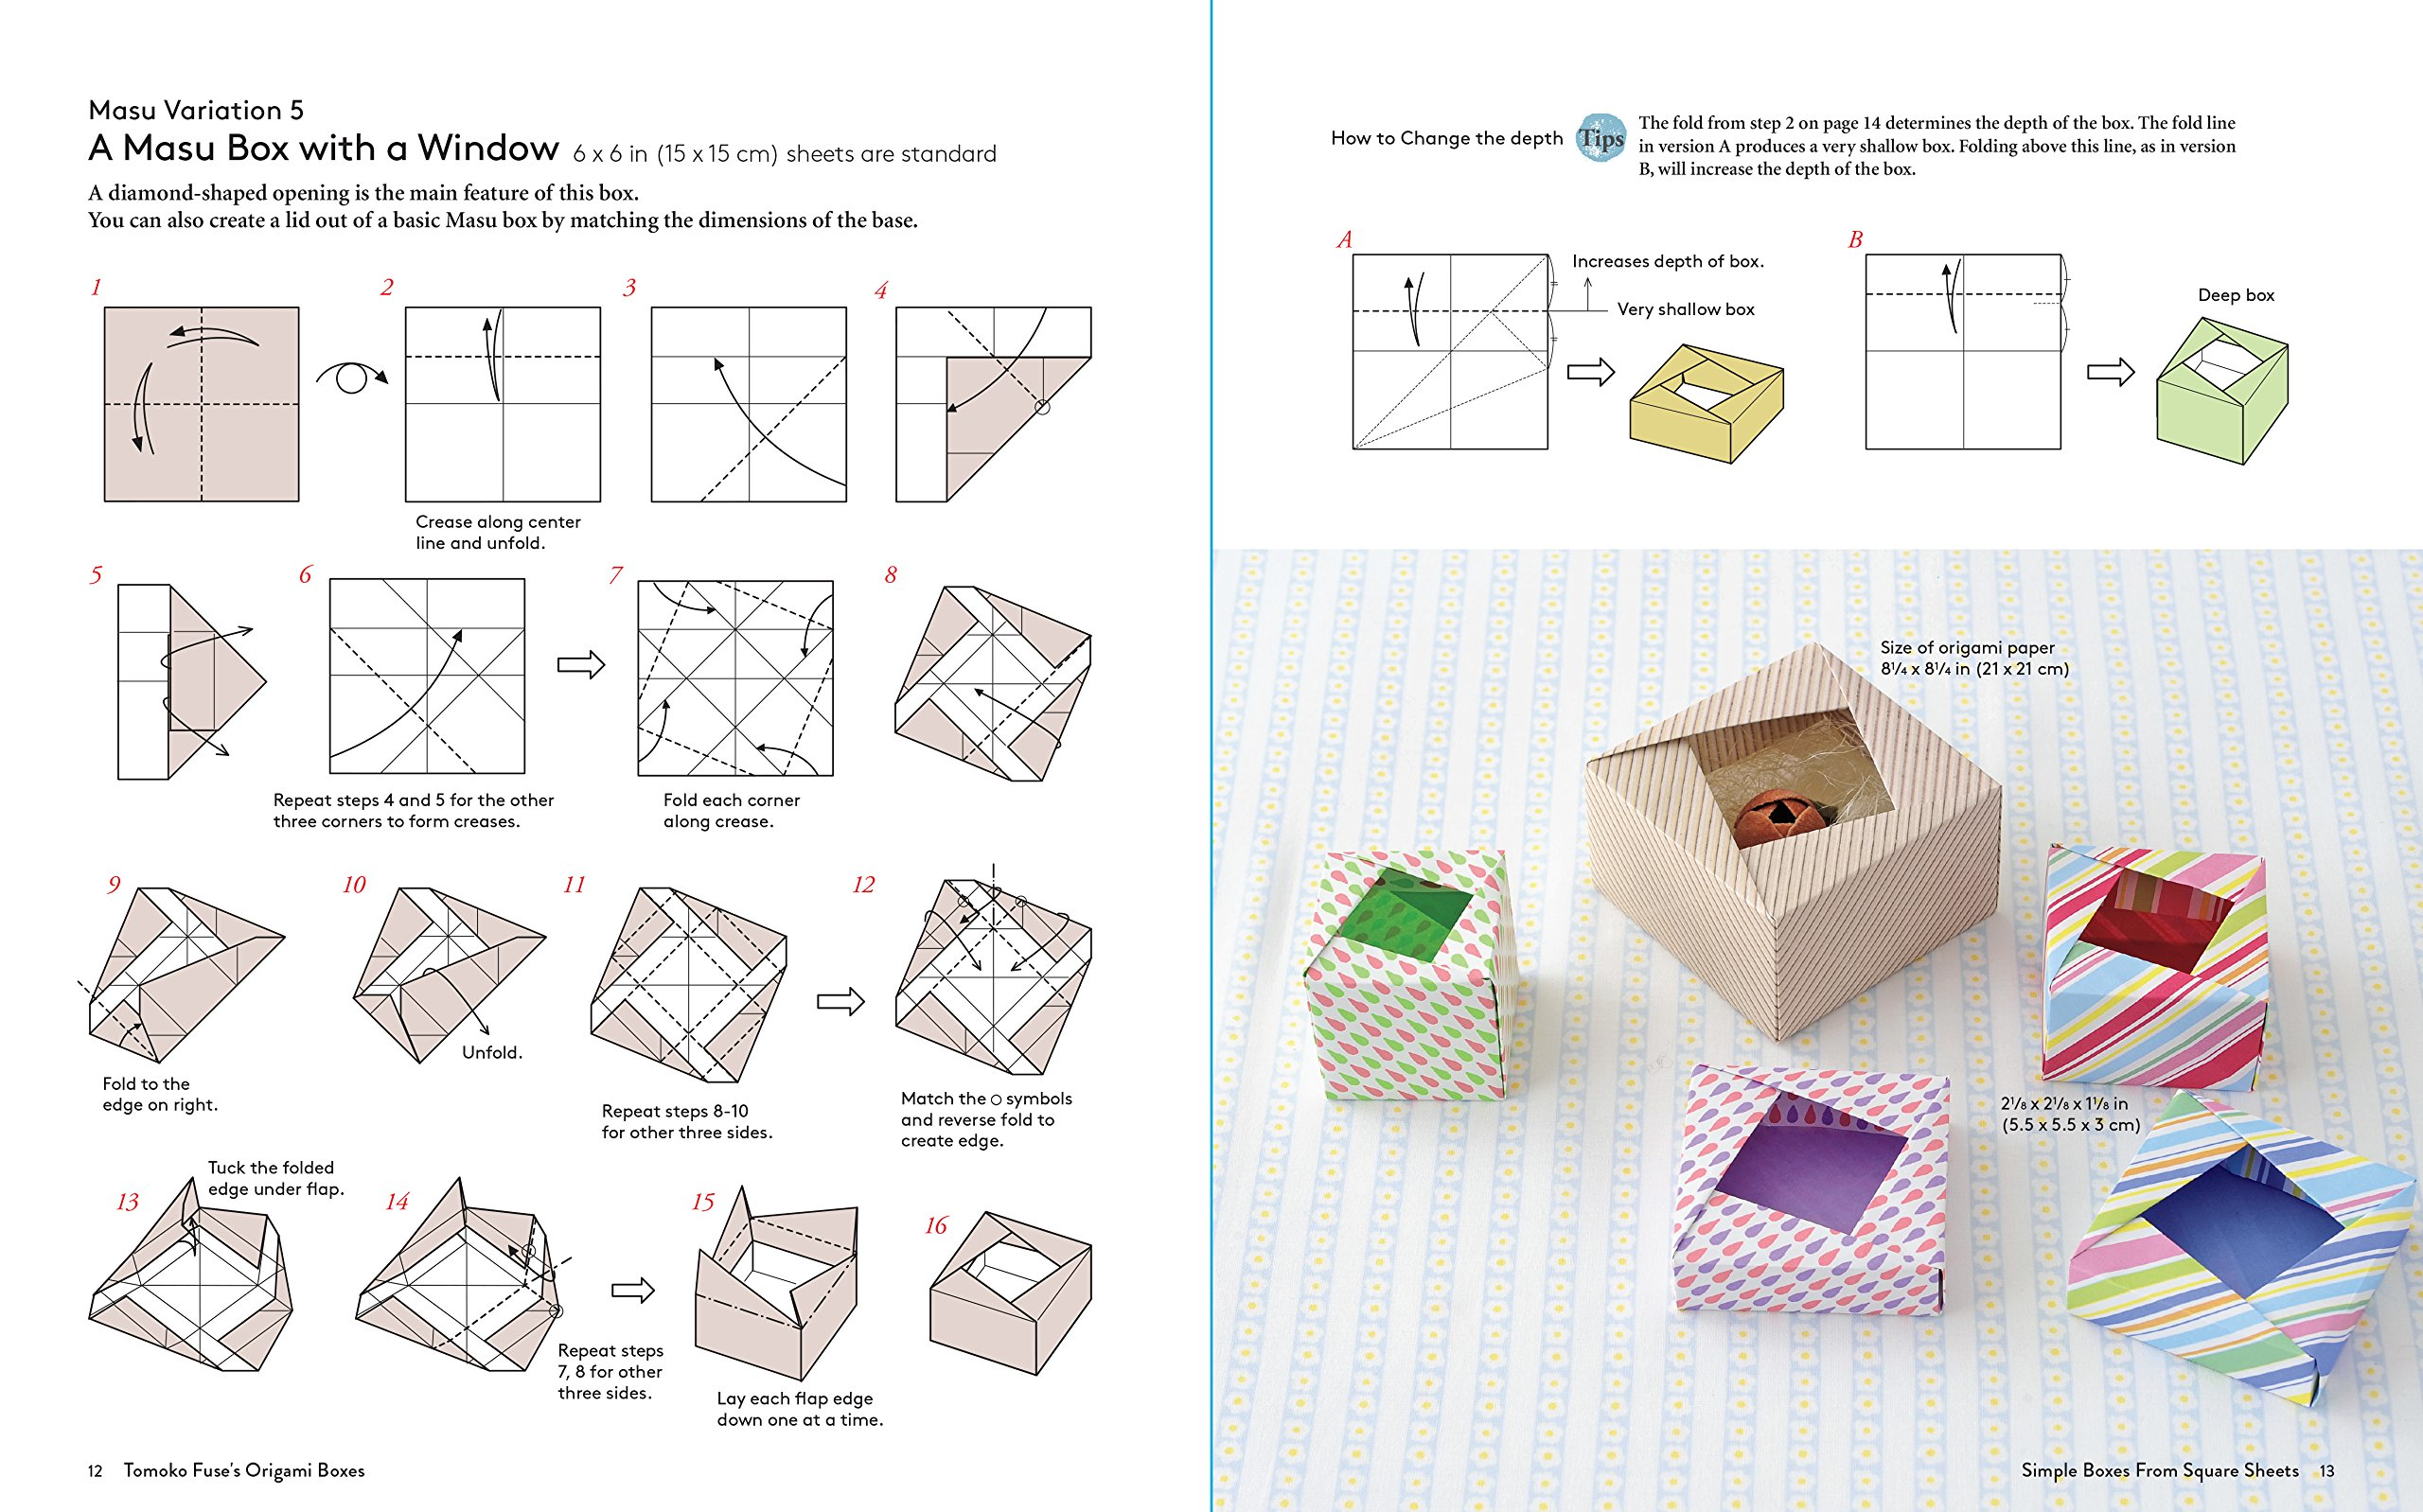 Peachy Tomoko Fuses Origami Boxes Beautiful Paper Gift Boxes From Japans Wiring Digital Resources Honesemecshebarightsorg